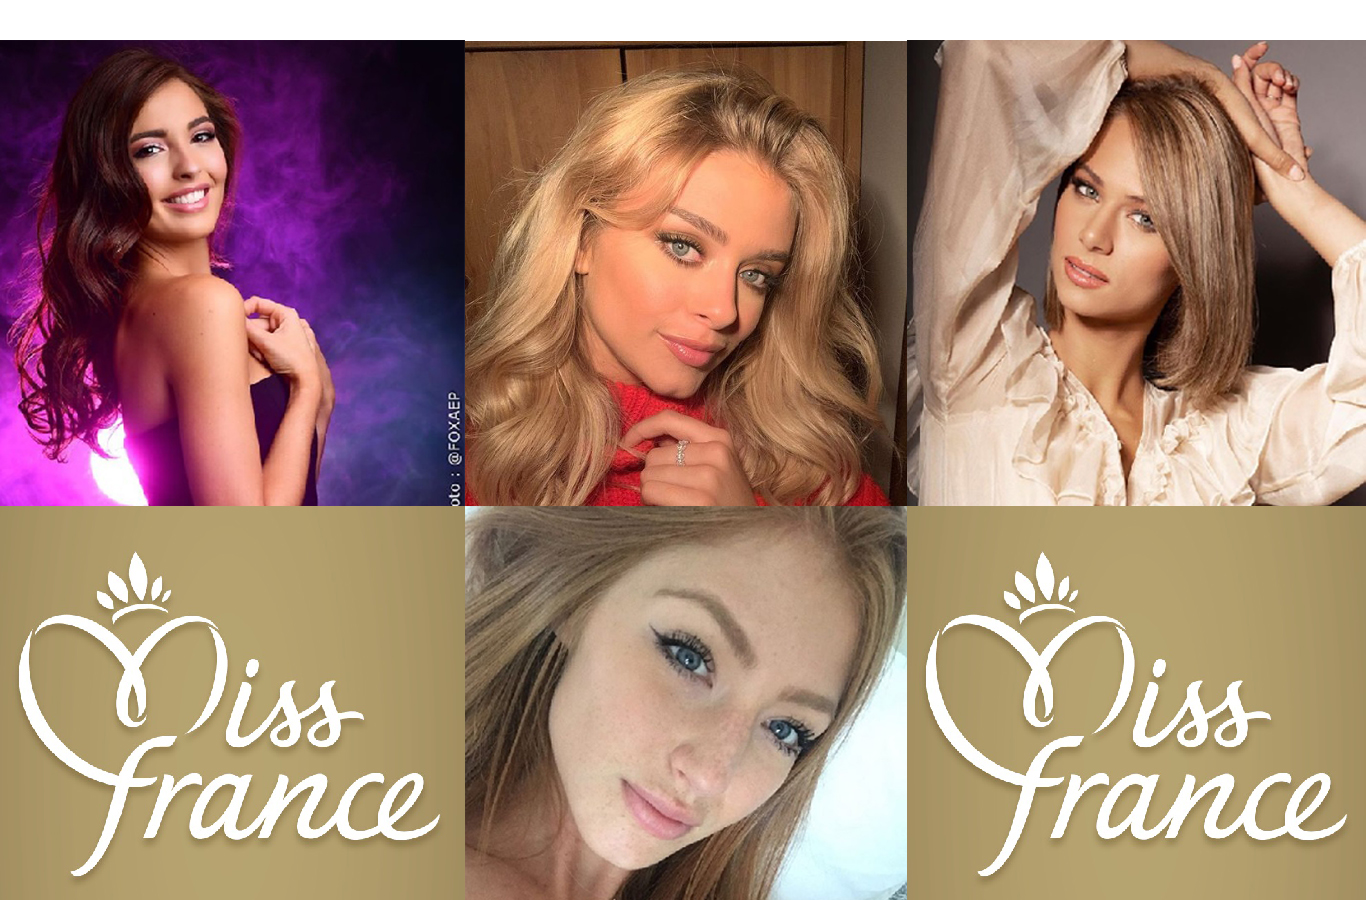 Miss France 2020 : les pronostics des 5 finalistes selon Médiazap TV